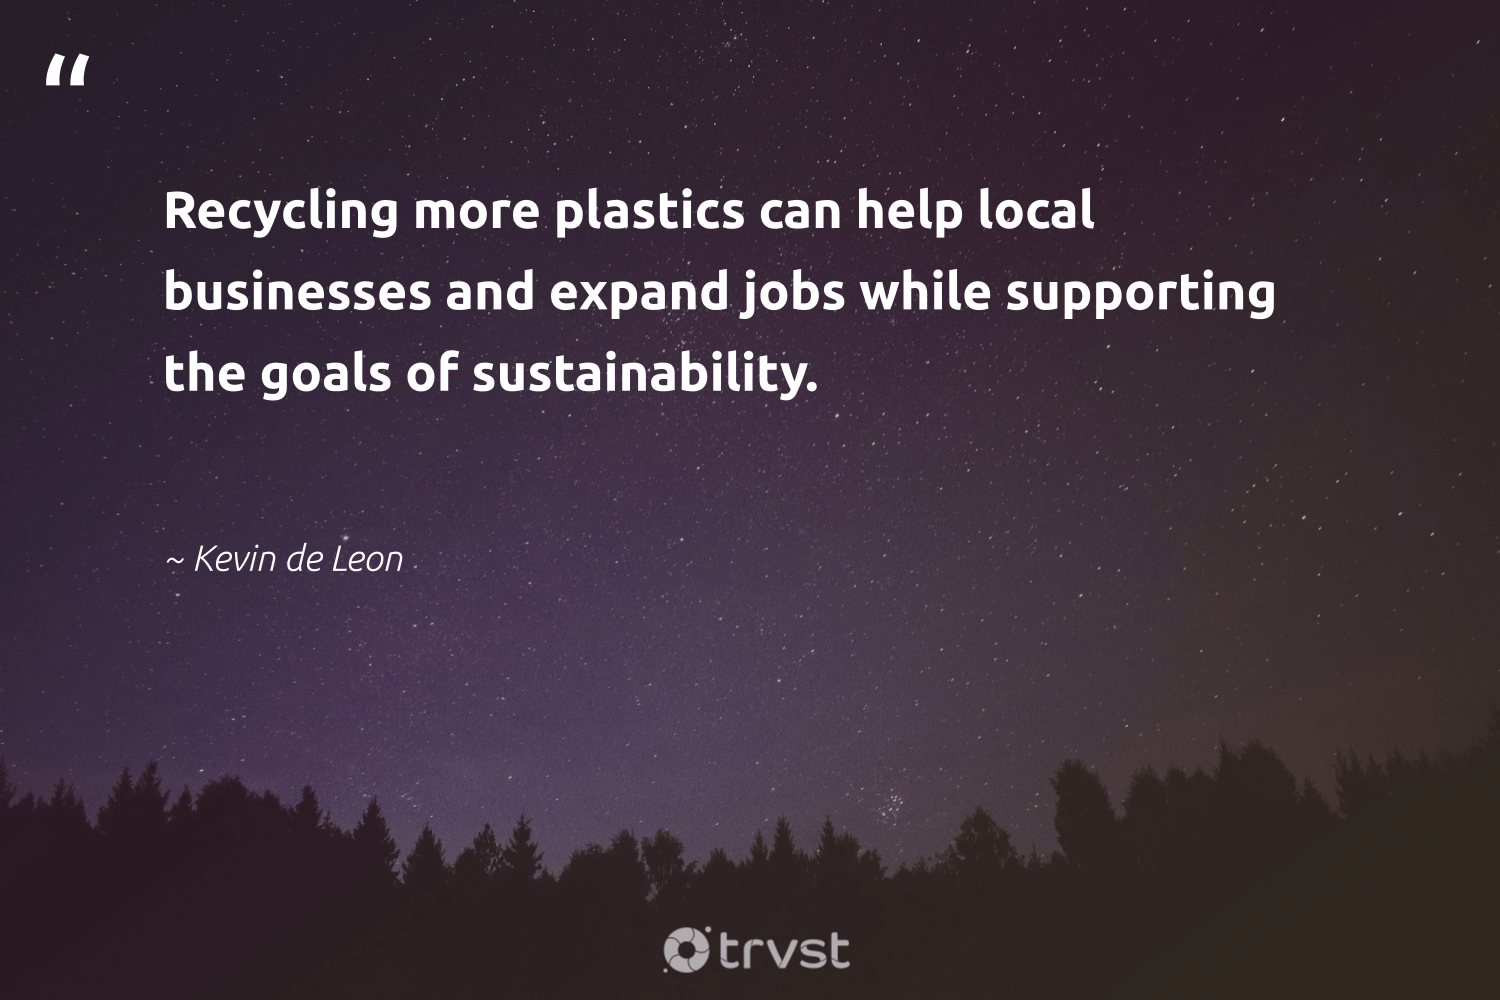 """""""Recycling more plastics can help local businesses and expand jobs while supporting the goals of sustainability.""""  - Kevin de Leon #trvst #quotes #plasticwaste #sustainability #plastics #recycling #goals #microplastic #wastefree #wasteless #beinspired #oneuseplastic"""